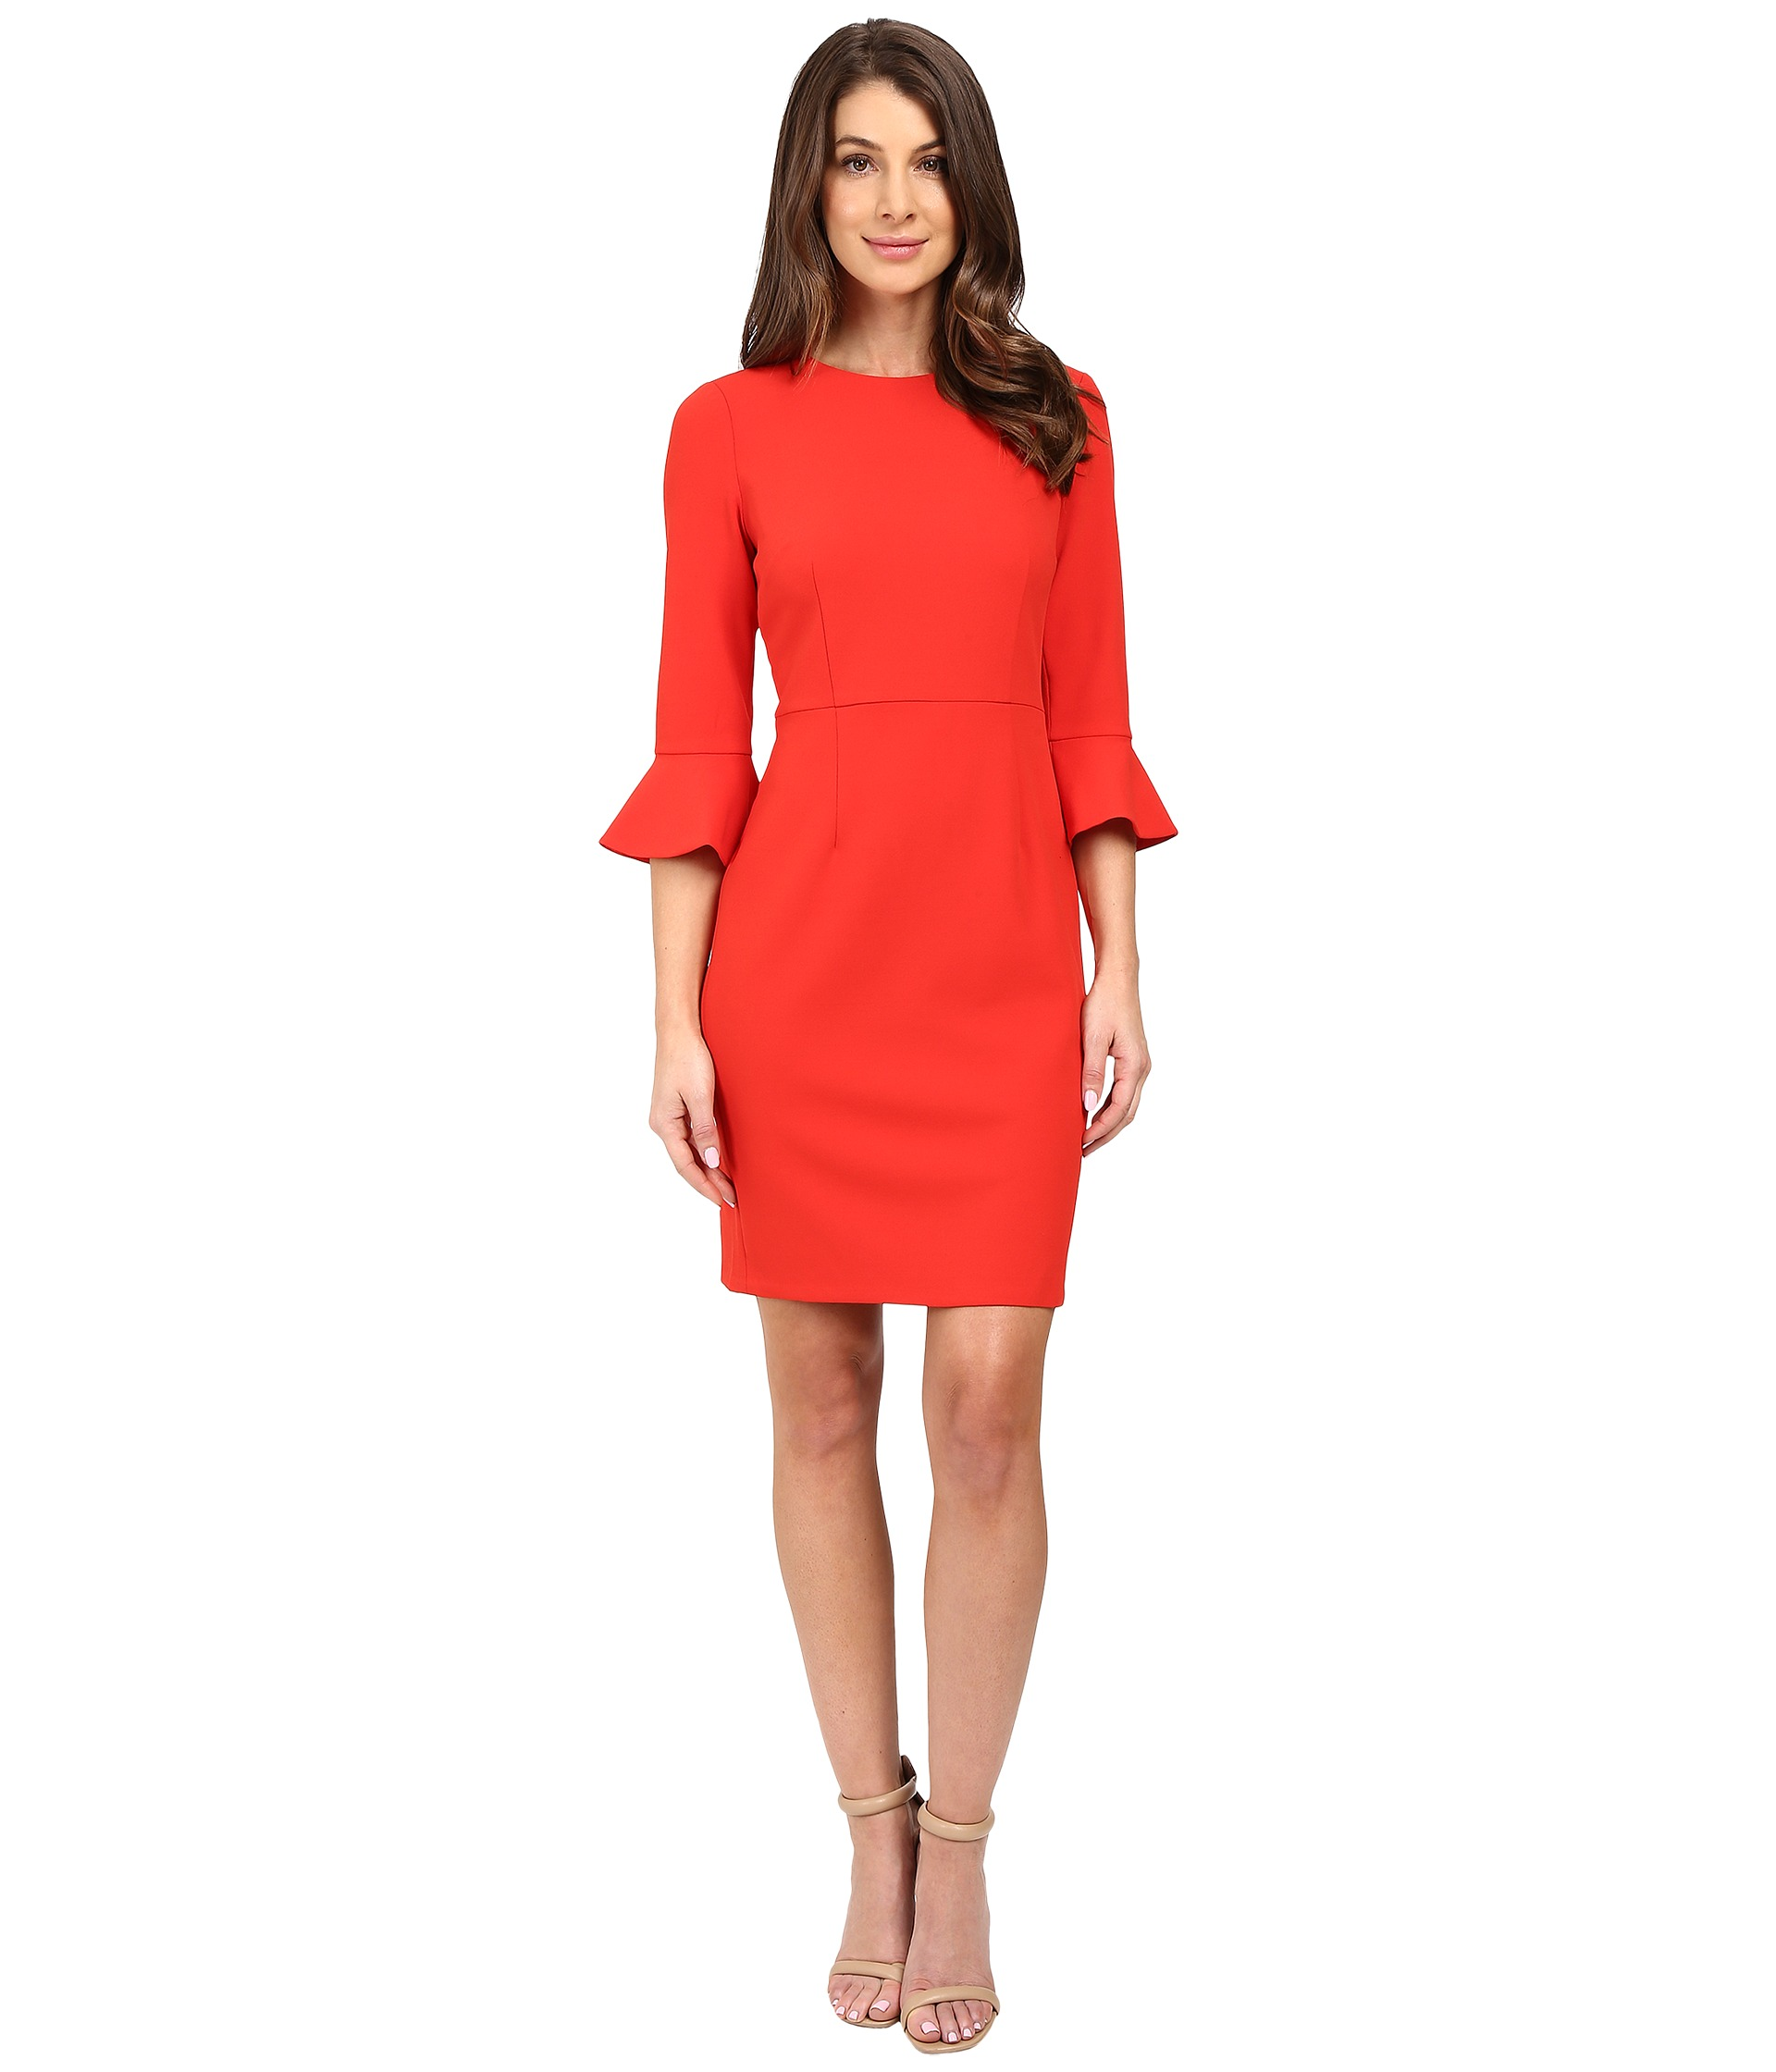 Where to buy donna morgan dresses